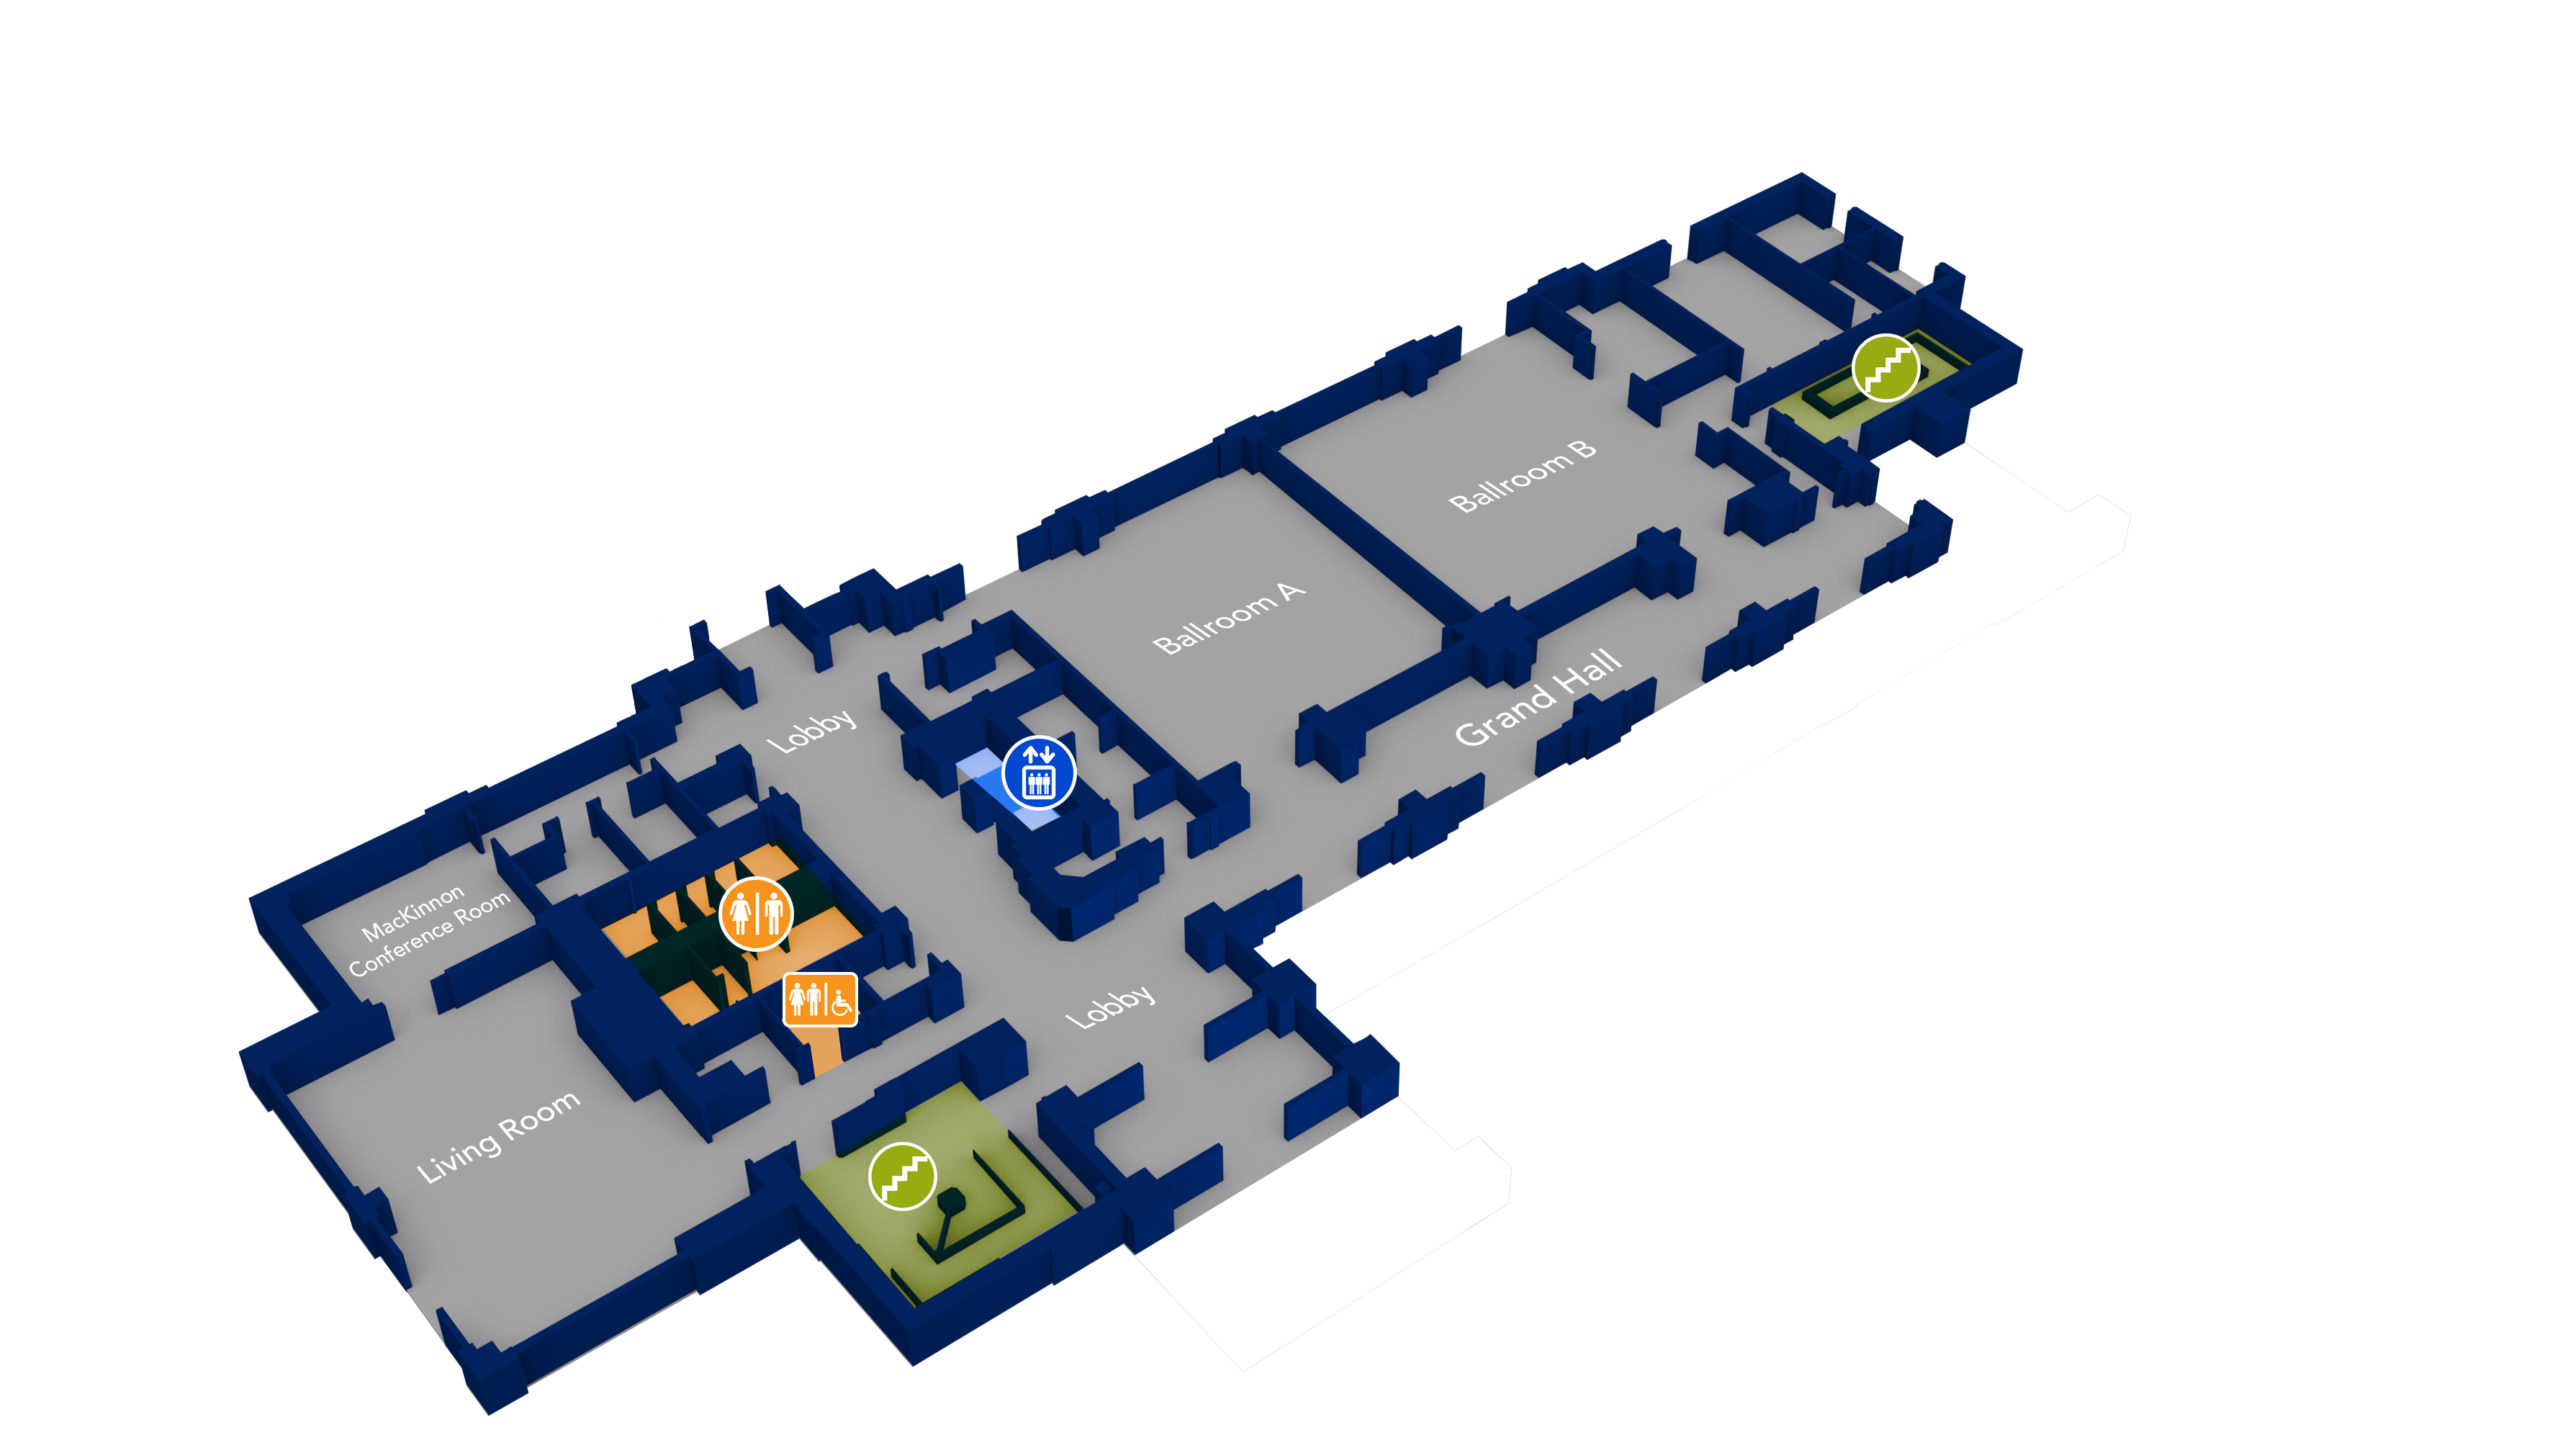 Boise State University 3D Floor plan with blue walls and gray flooring